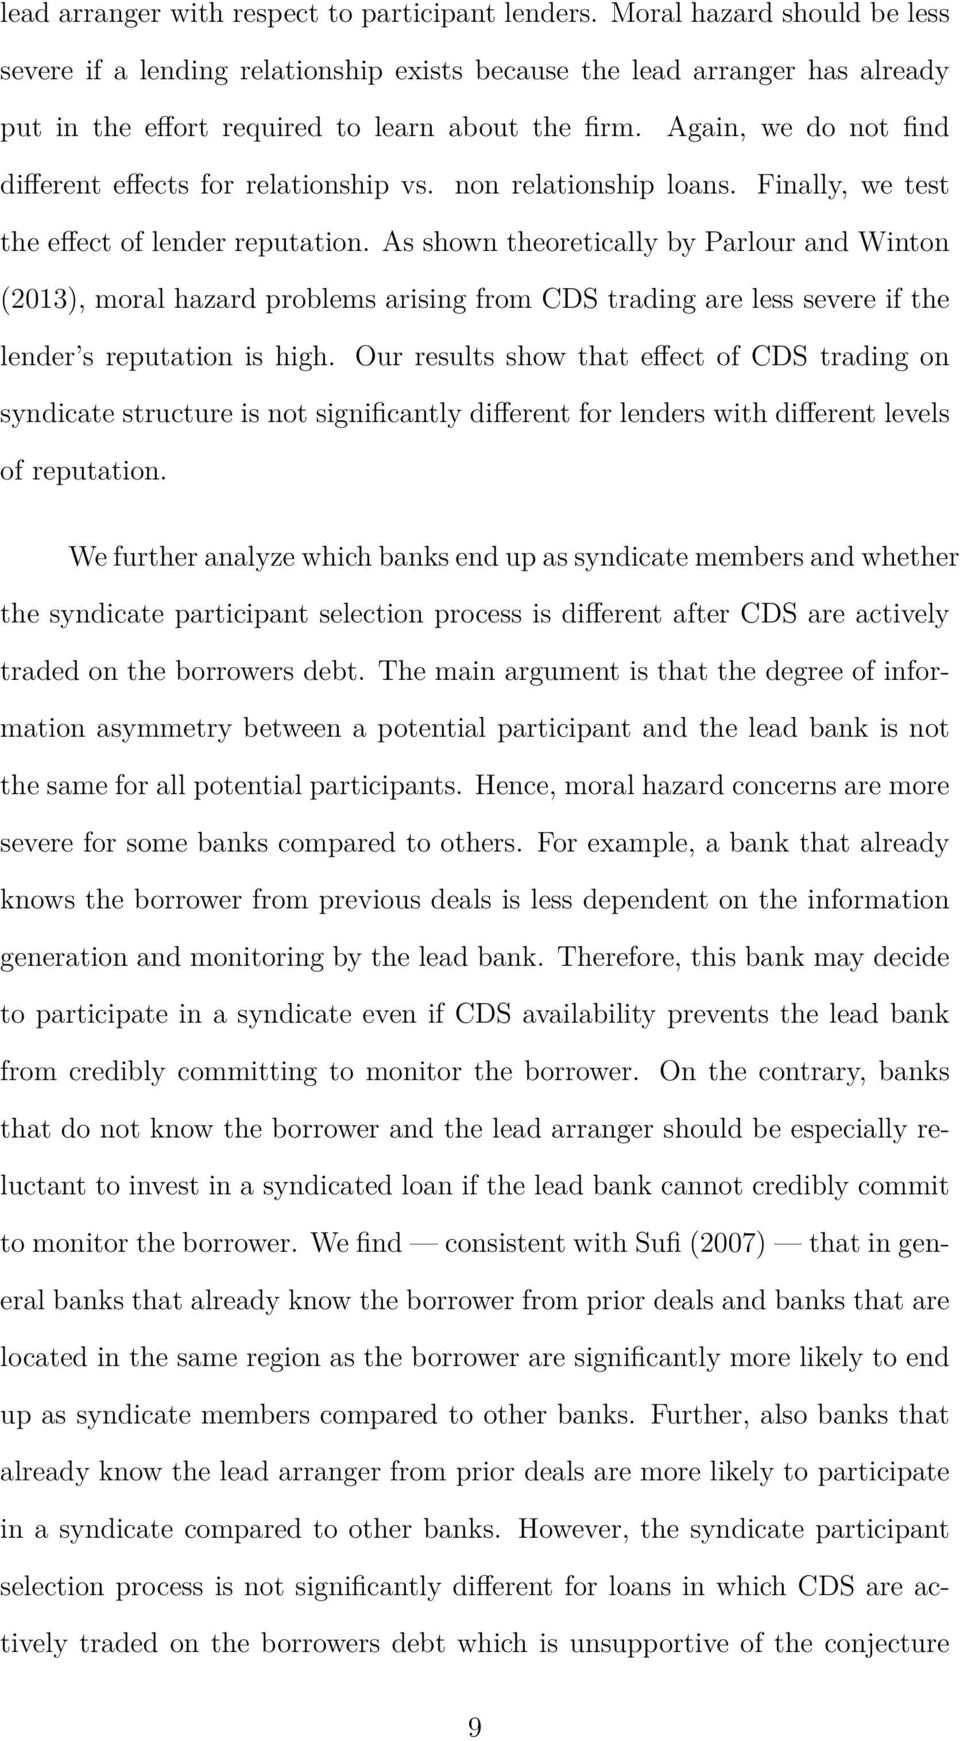 Again, we do not find different effects for relationship vs. non relationship loans. Finally, we test the effect of lender reputation.